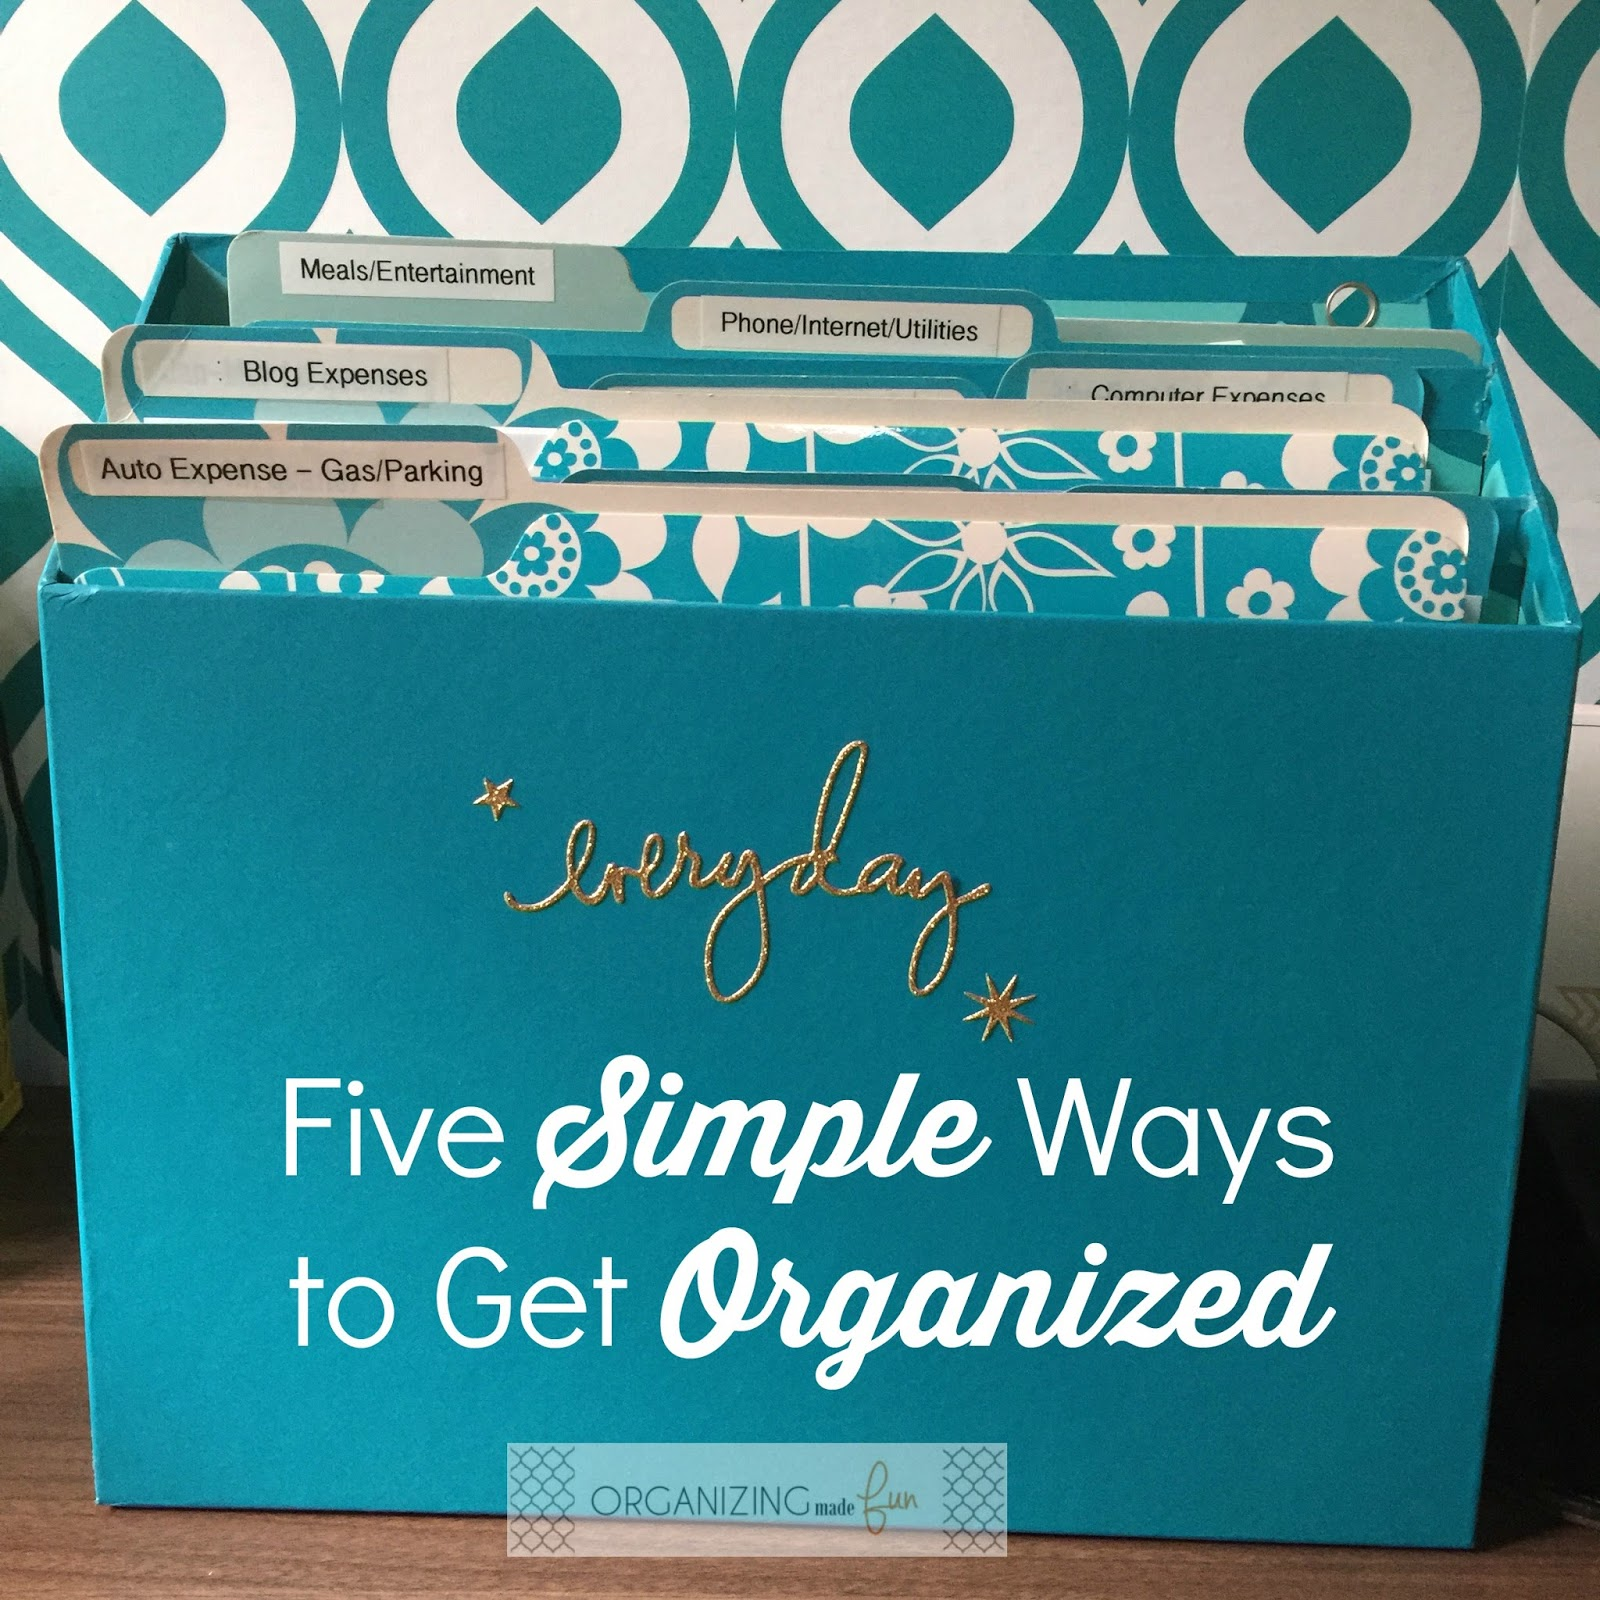 five simple ways to get organized organizing made fun five simple ways to get organized. Black Bedroom Furniture Sets. Home Design Ideas